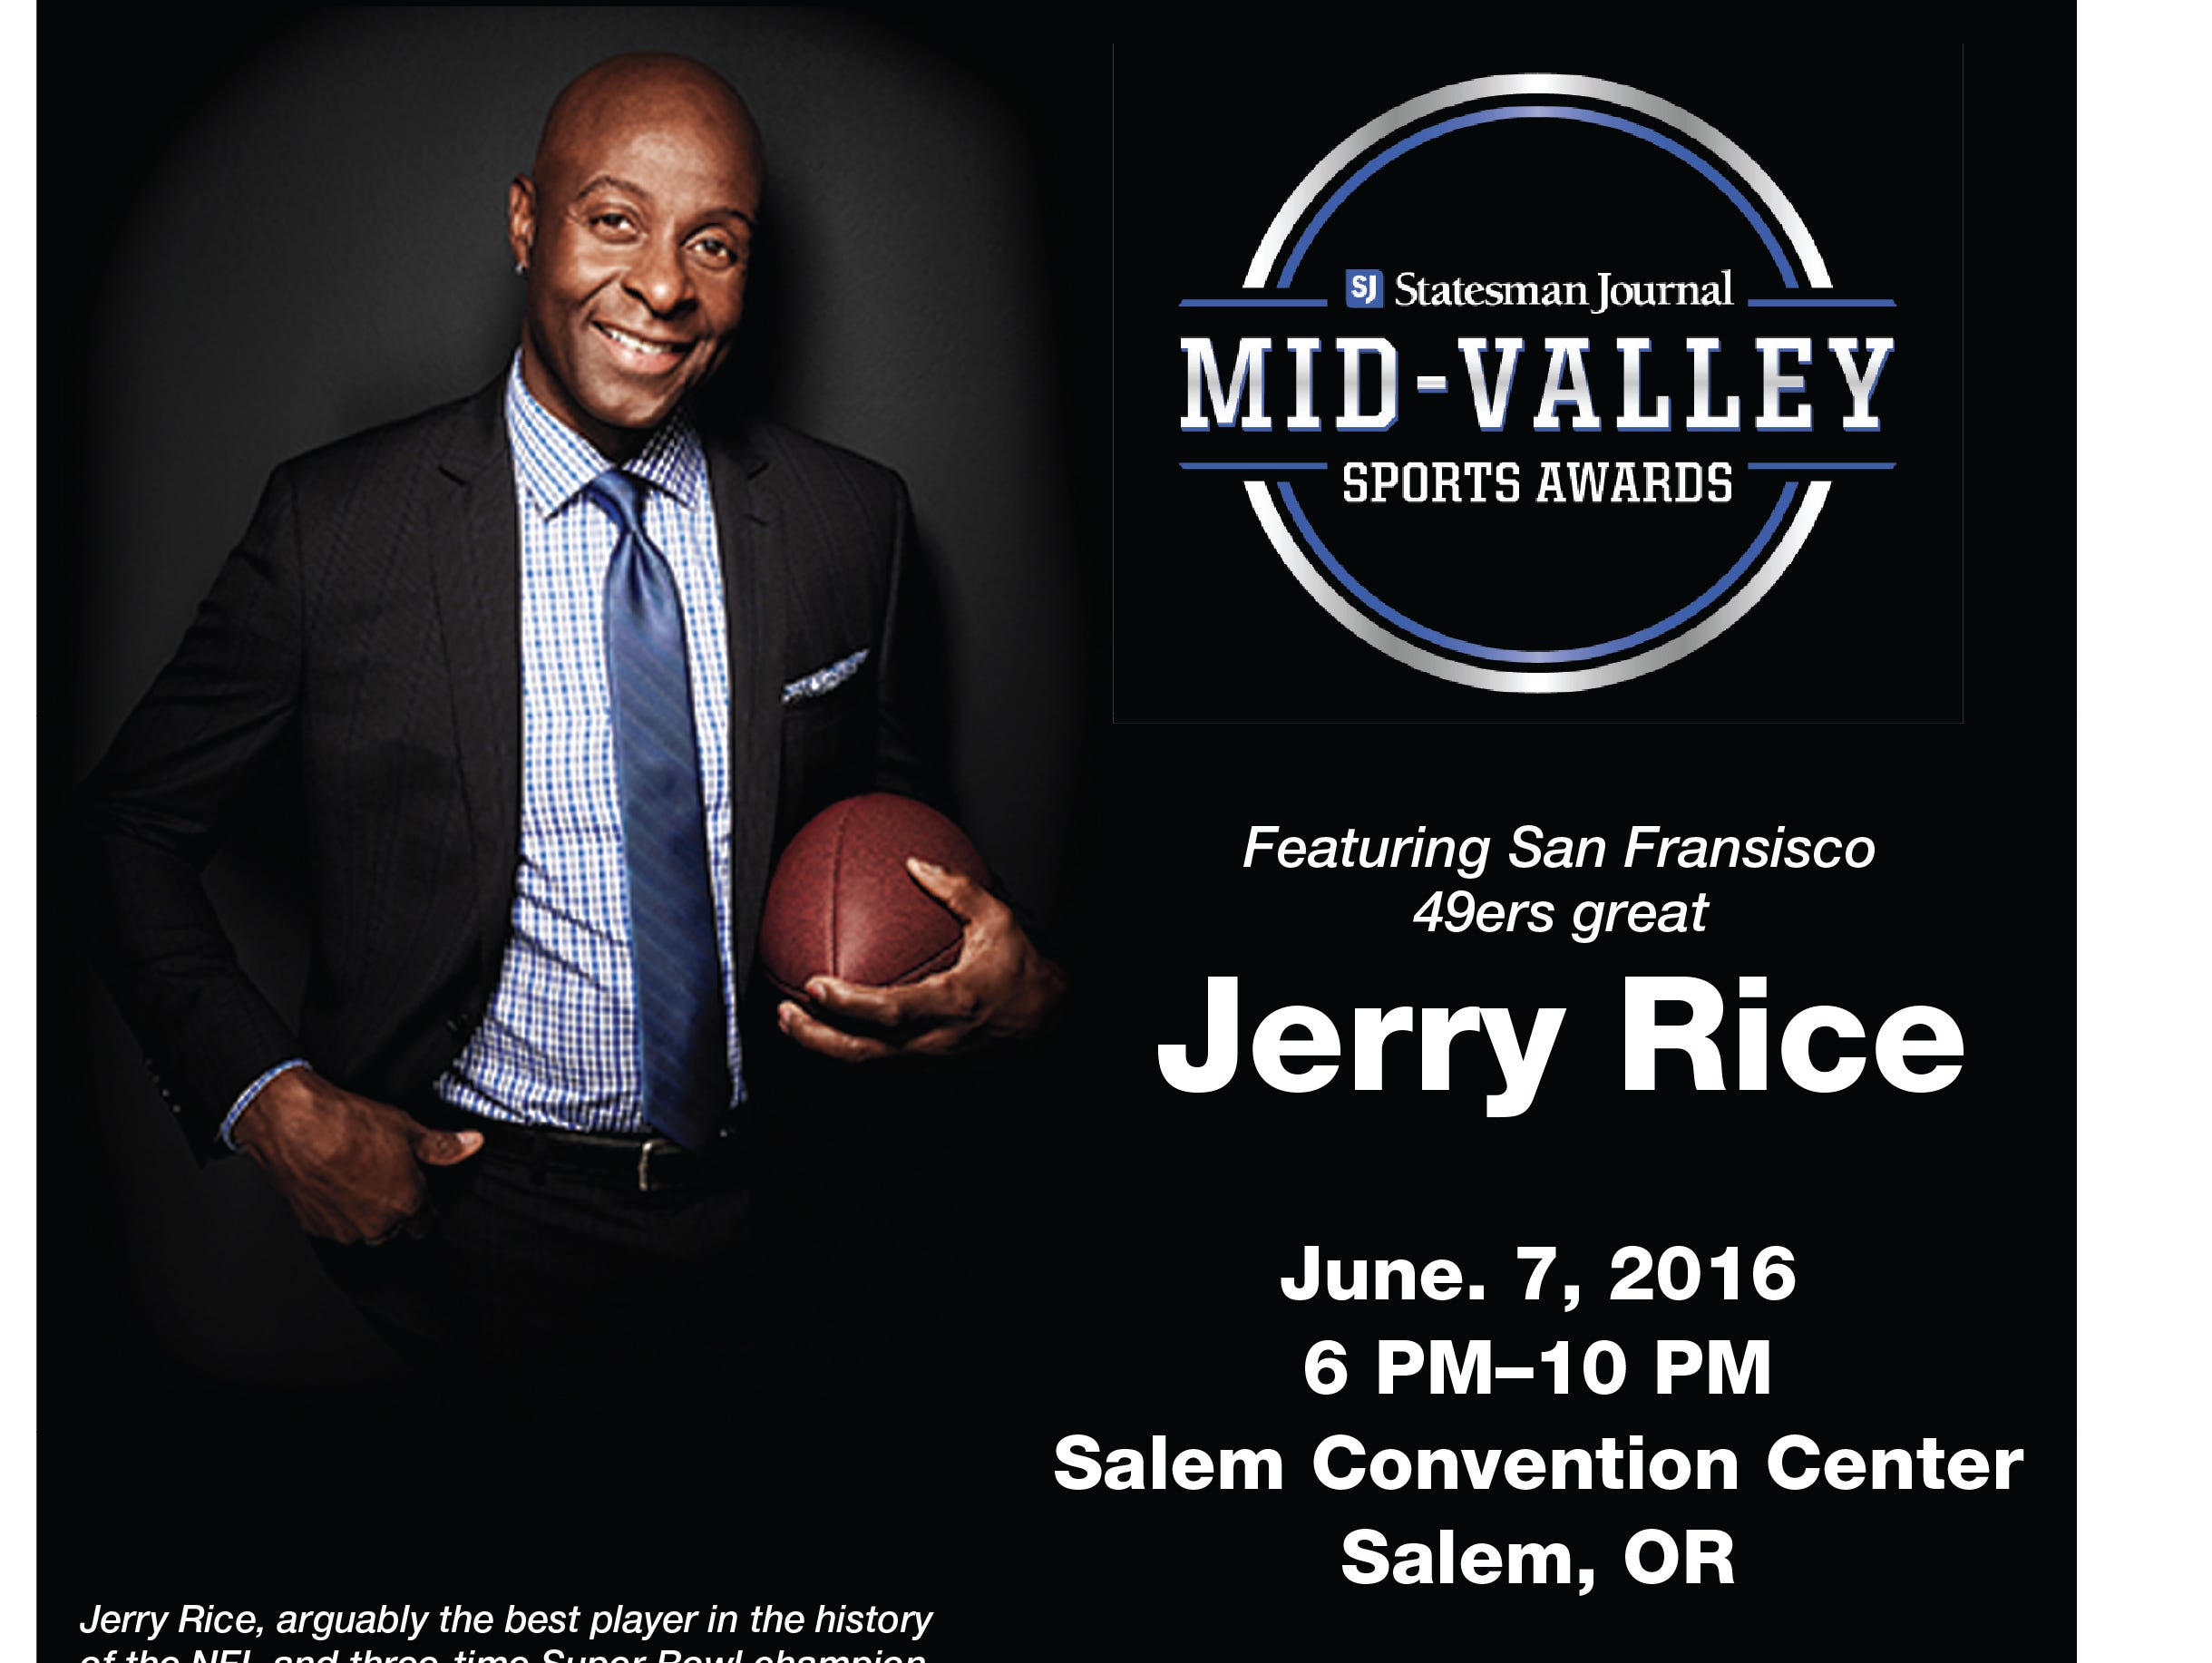 Three-time Super Bowl Champion Jerry Rice will be headlining the June 7, 2016, Mid-Valley Sports Awards at the Salem Convention Center. Please join us and spread the word!